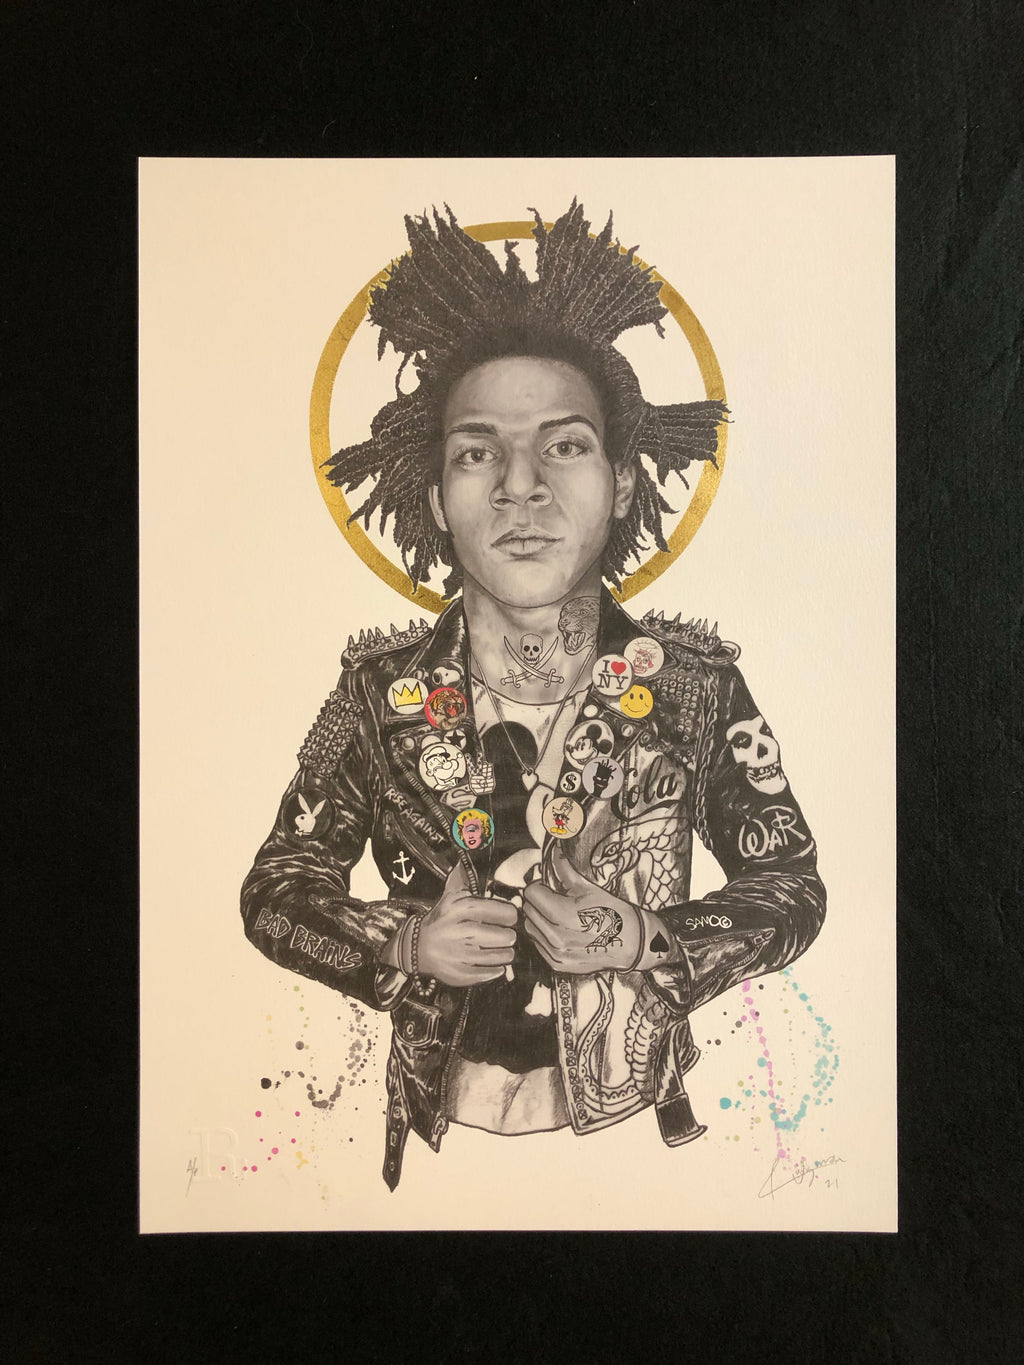 Copy of Pop Art Punk - Basquiat